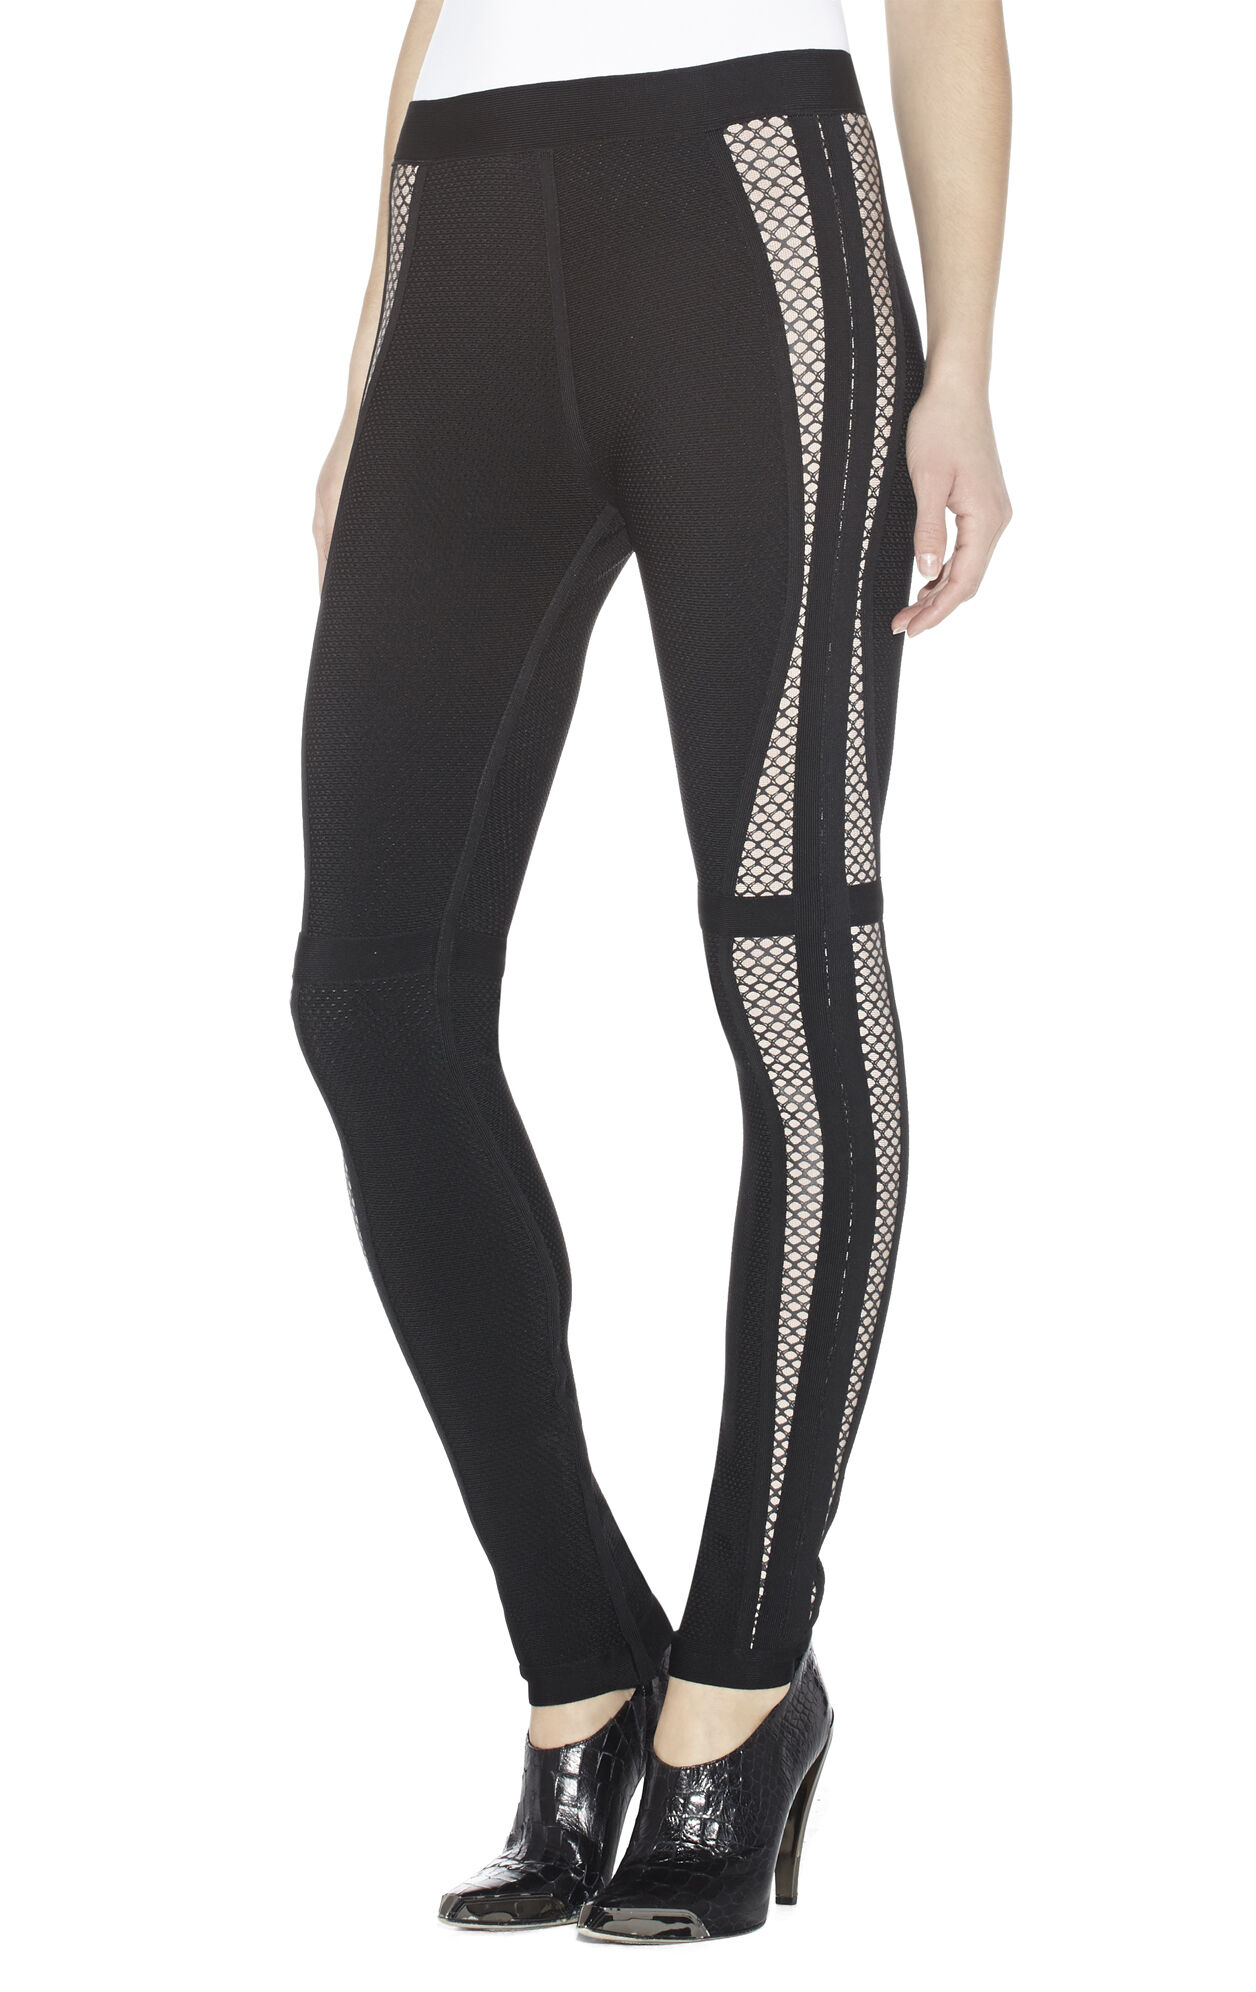 Elijah Multitexture Mesh-Blocked Pant